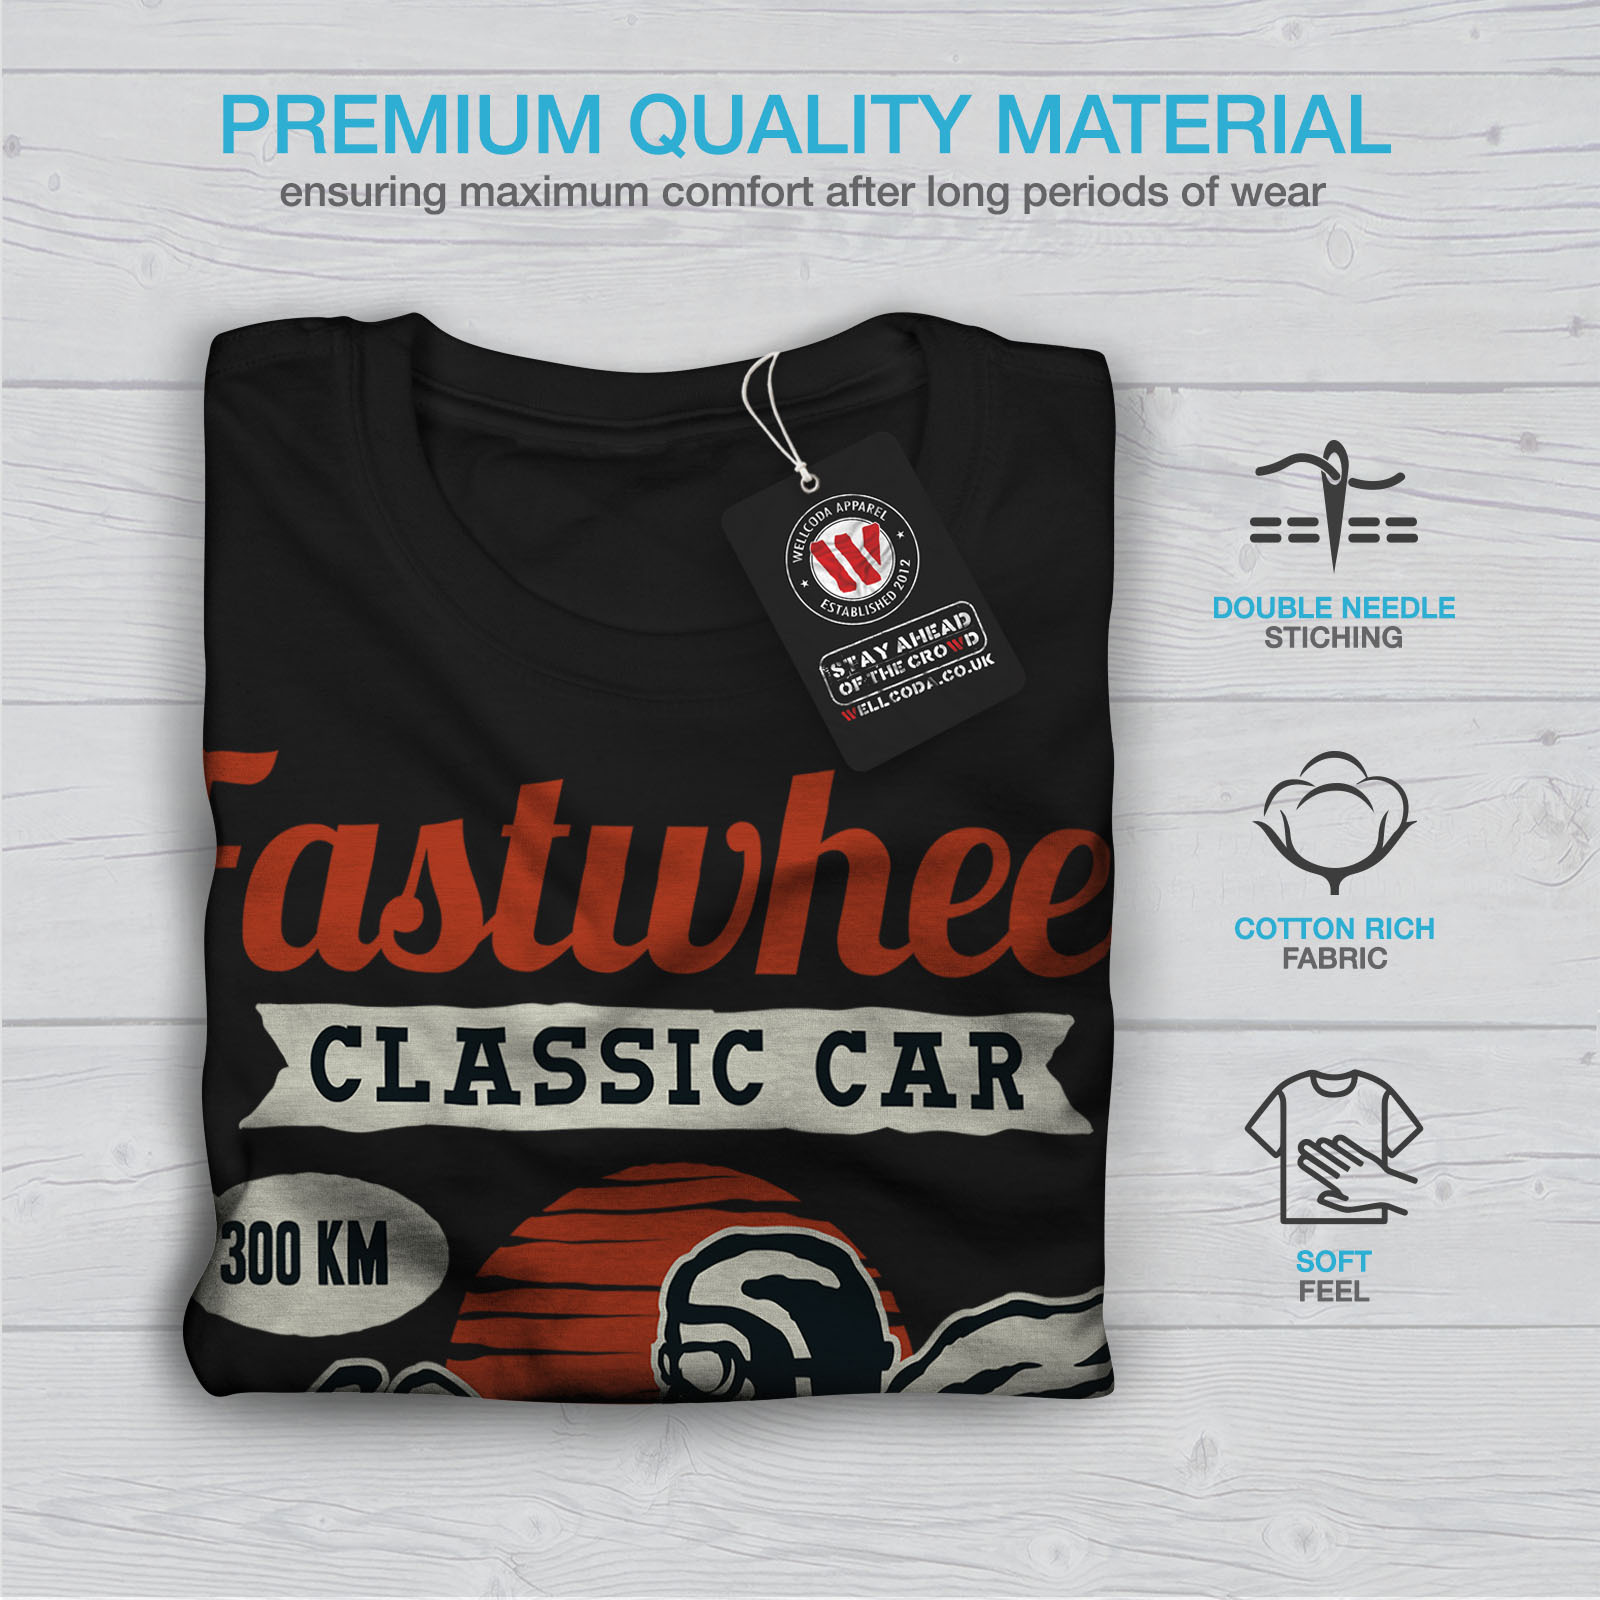 Fast Wheel Classic Car Shirt Women T Shirt